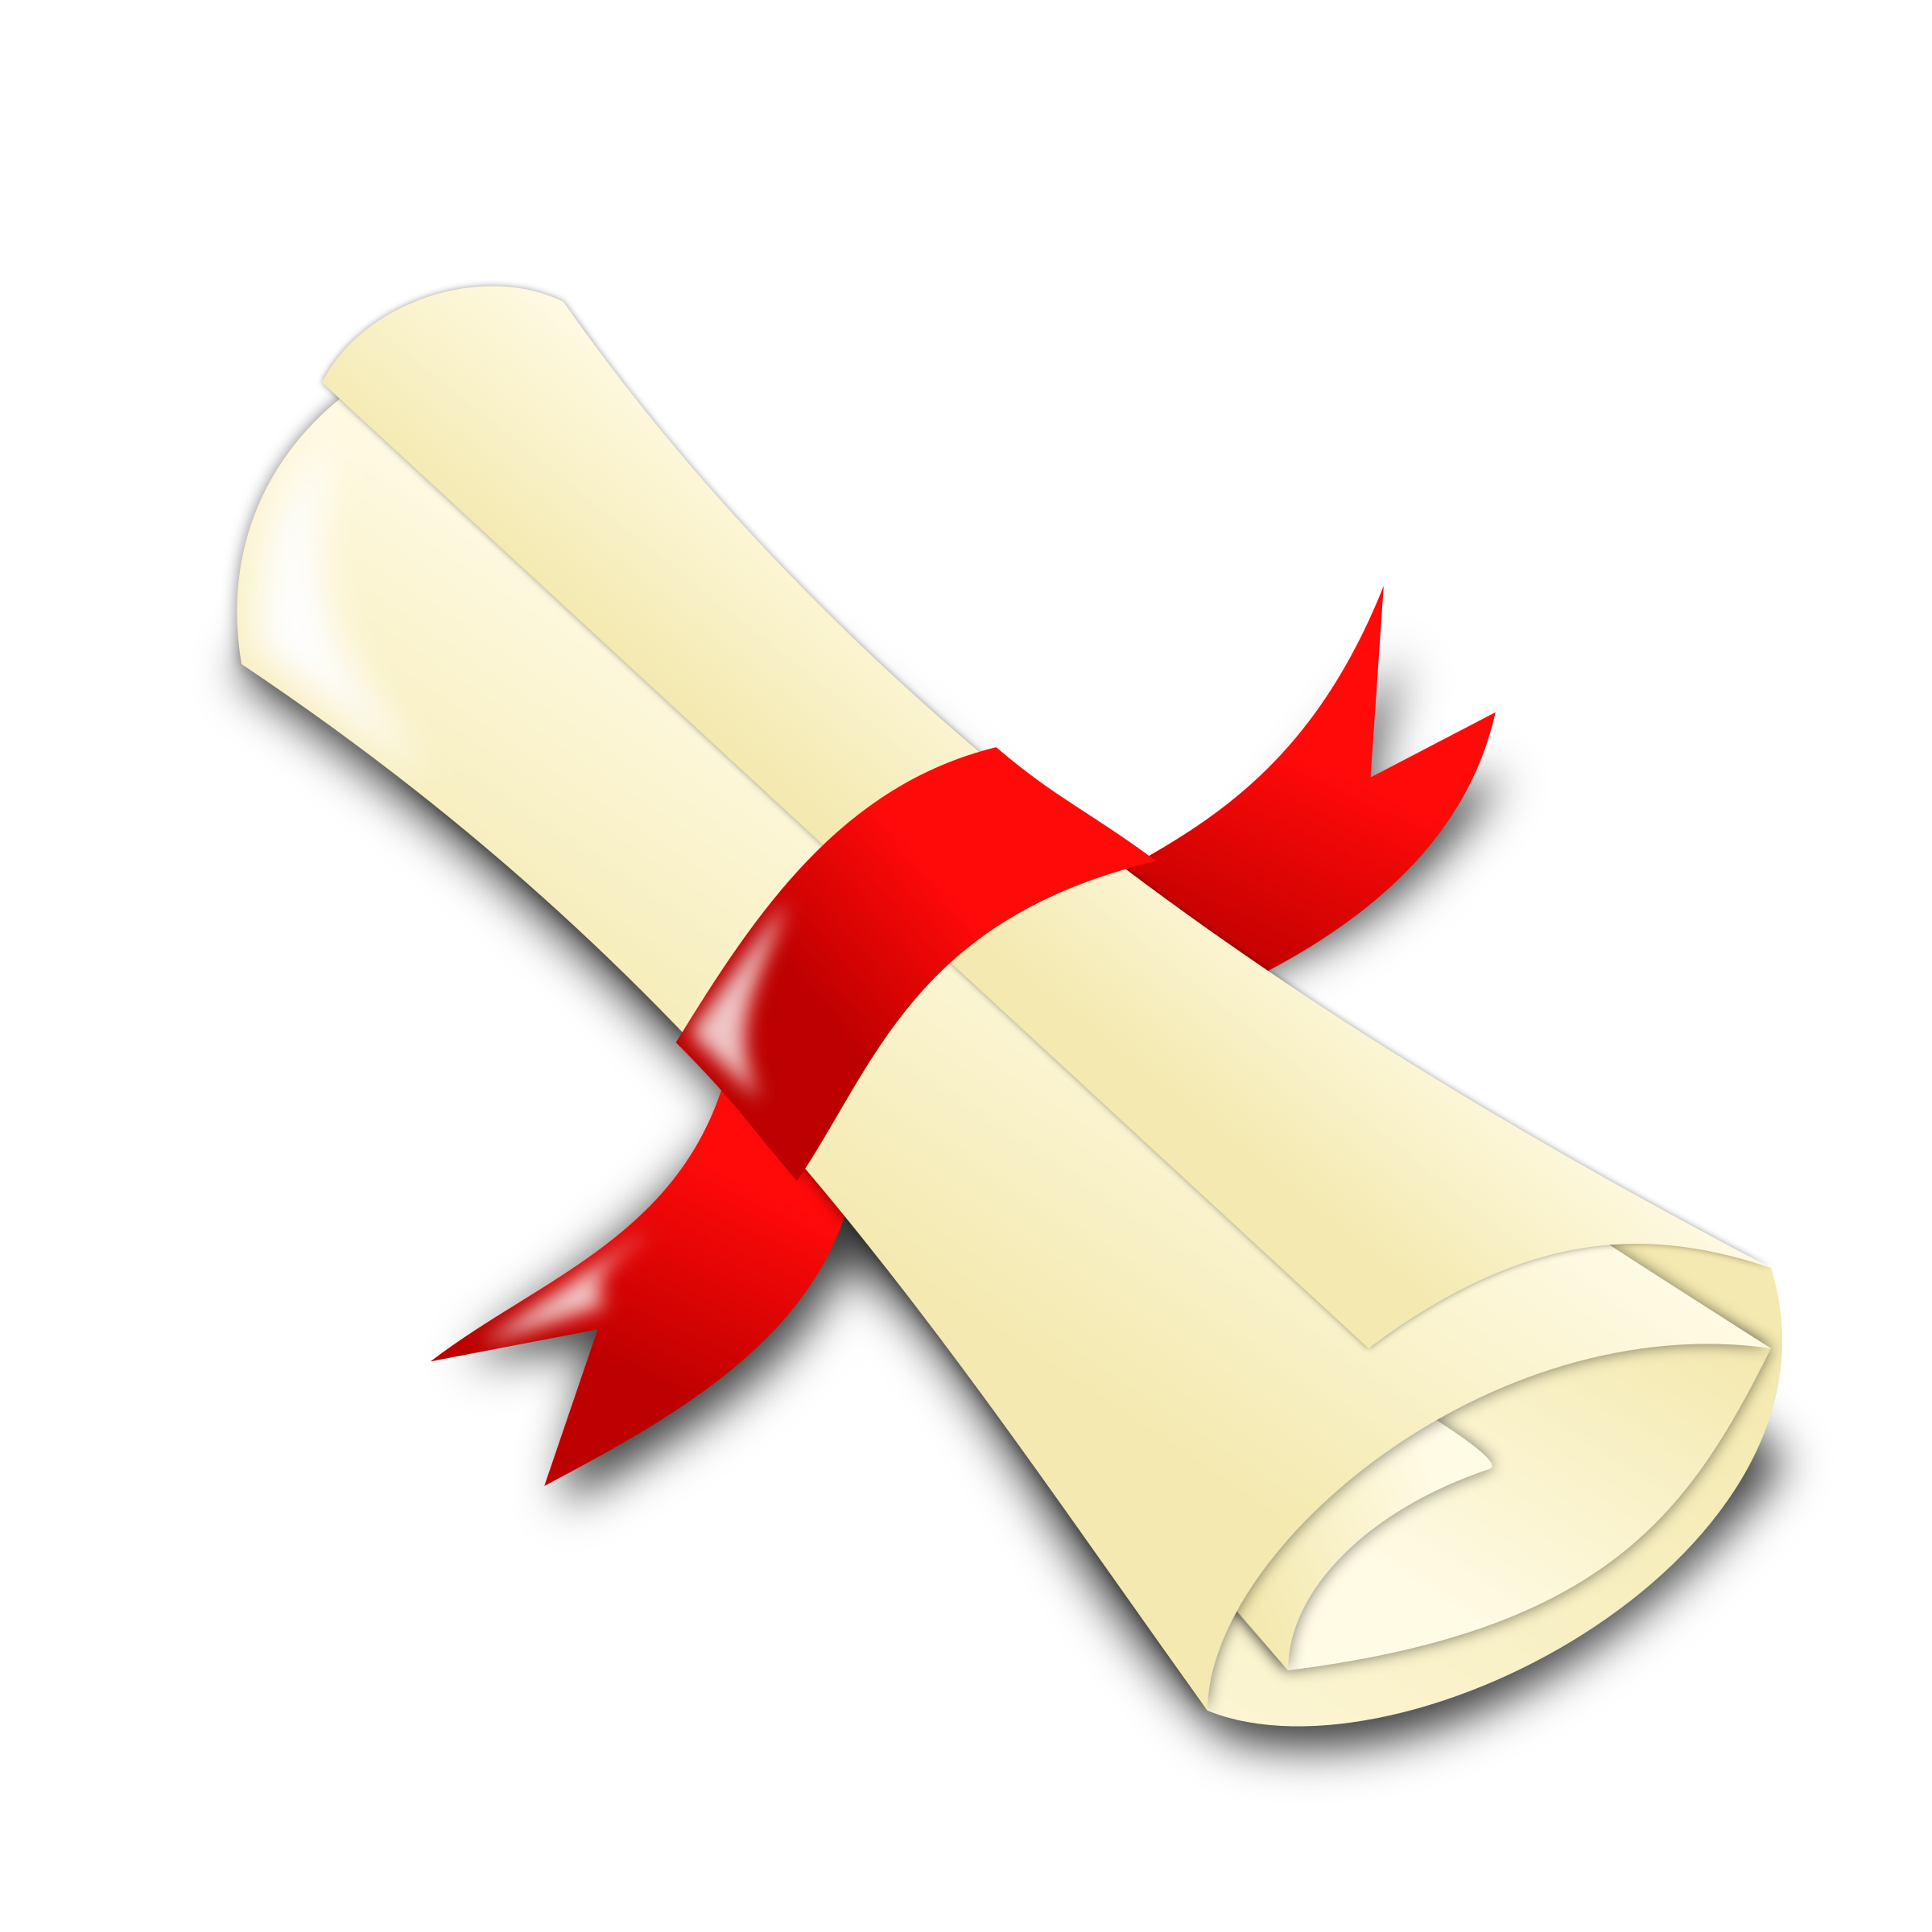 Clipart christmas cracker. Graduation icon big image